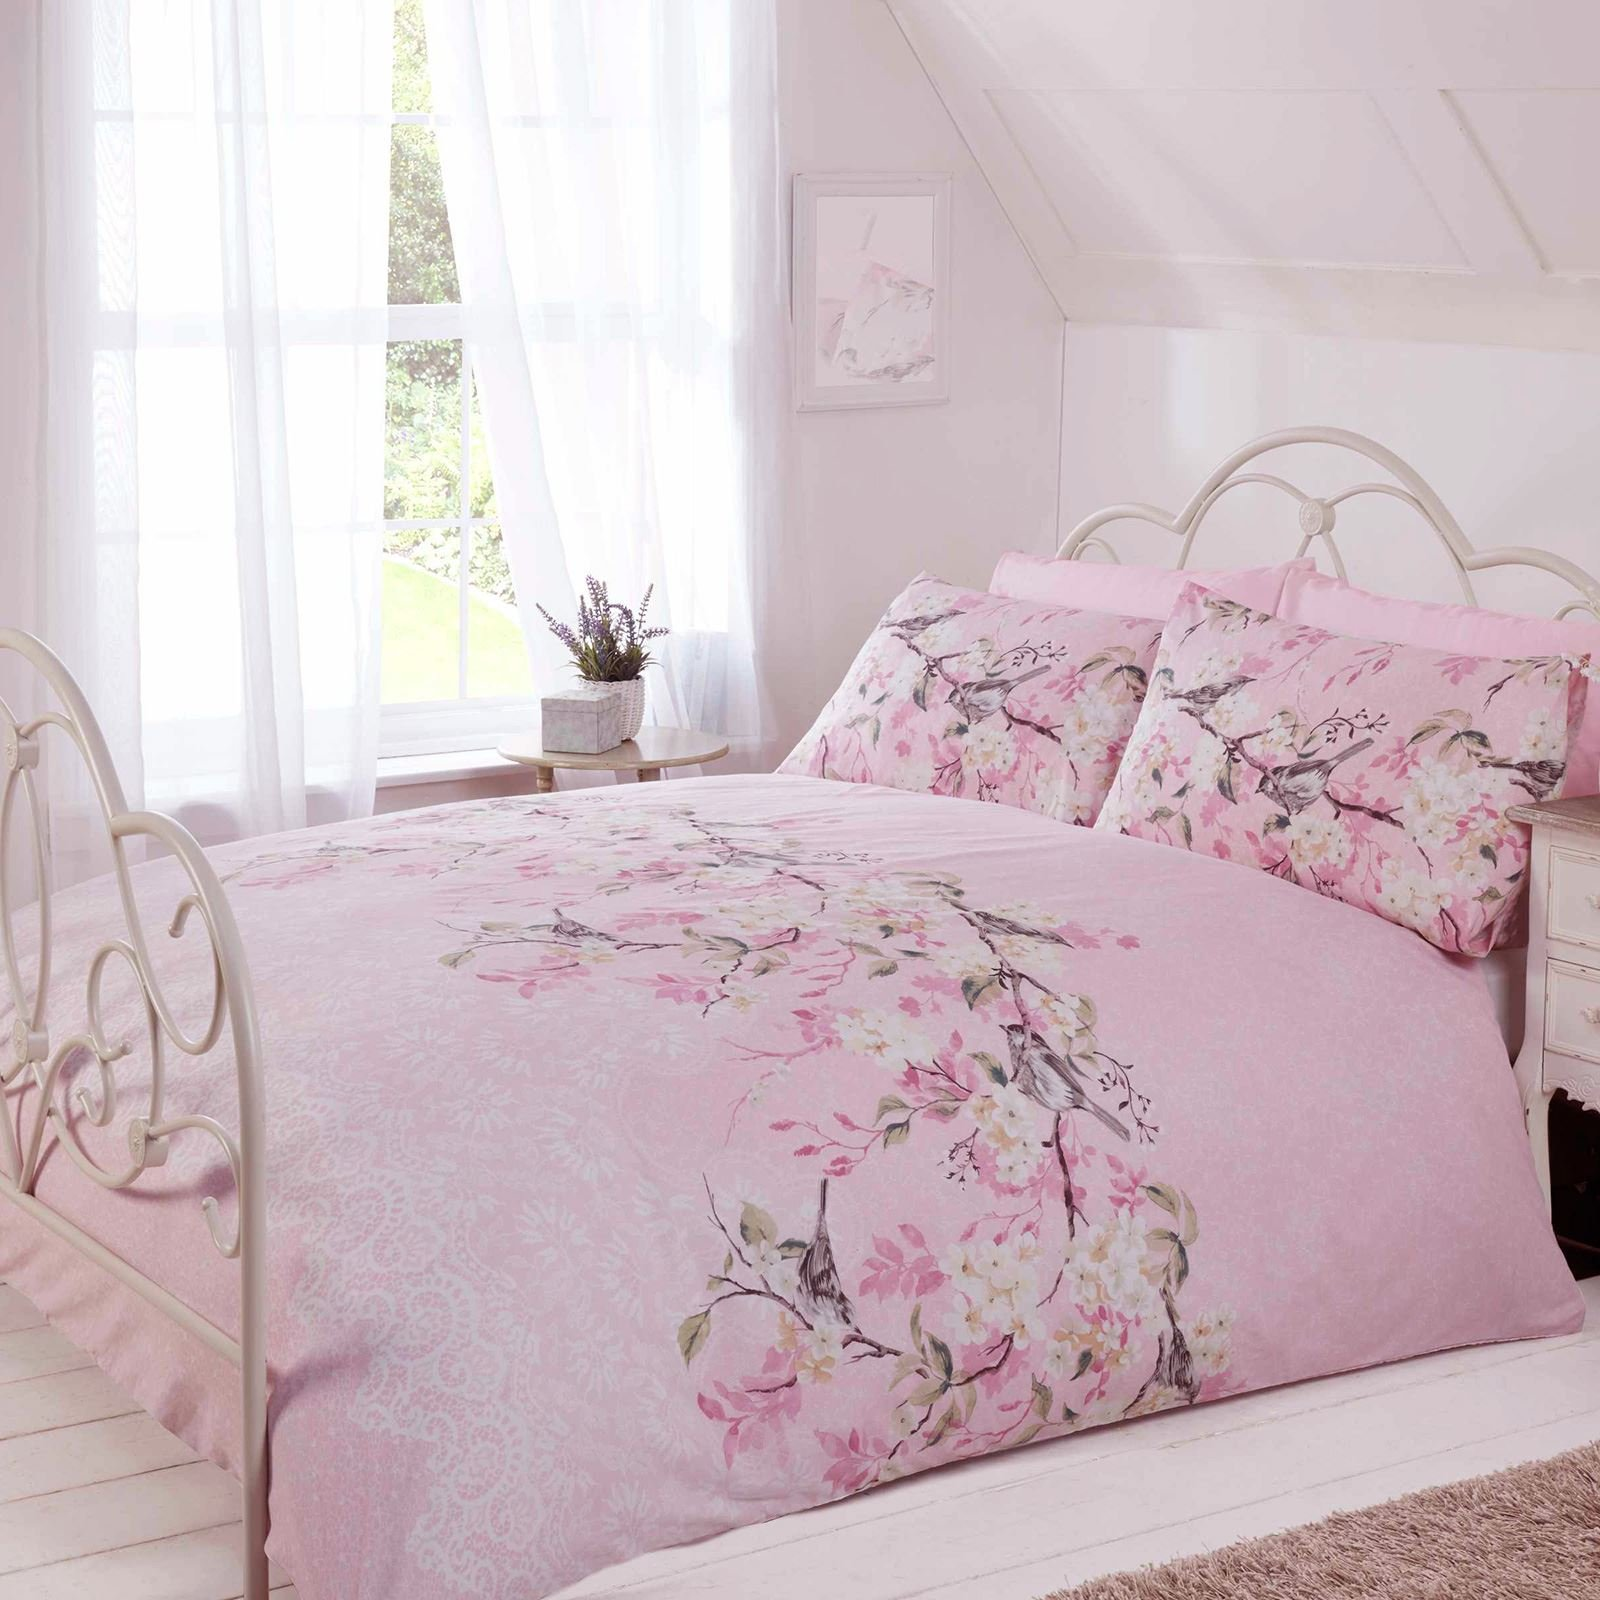 Eloise Oriental Blossom Duvet Cover and Pillowcase Set (Pink, Double) by Made with LoVe